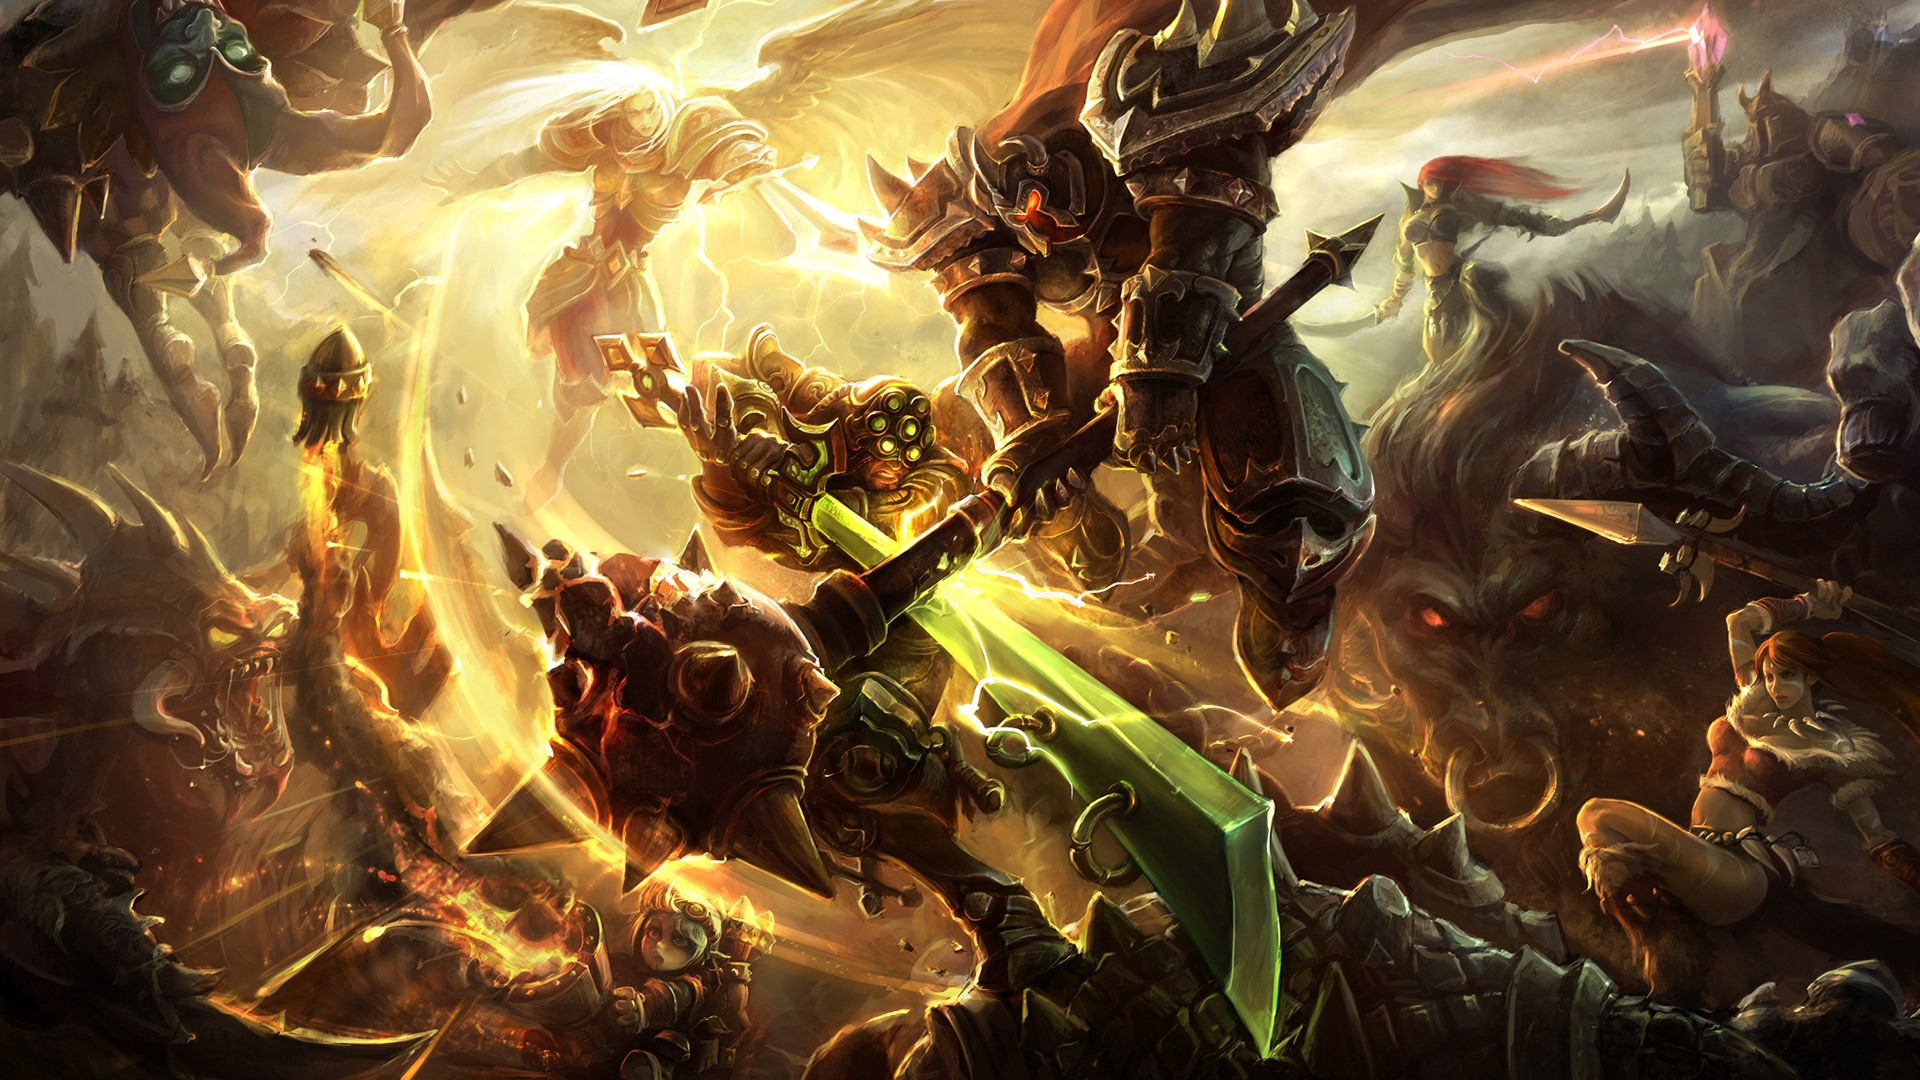 League of Legends game HD wallpapers #7 - 1920x1080 Wallpaper